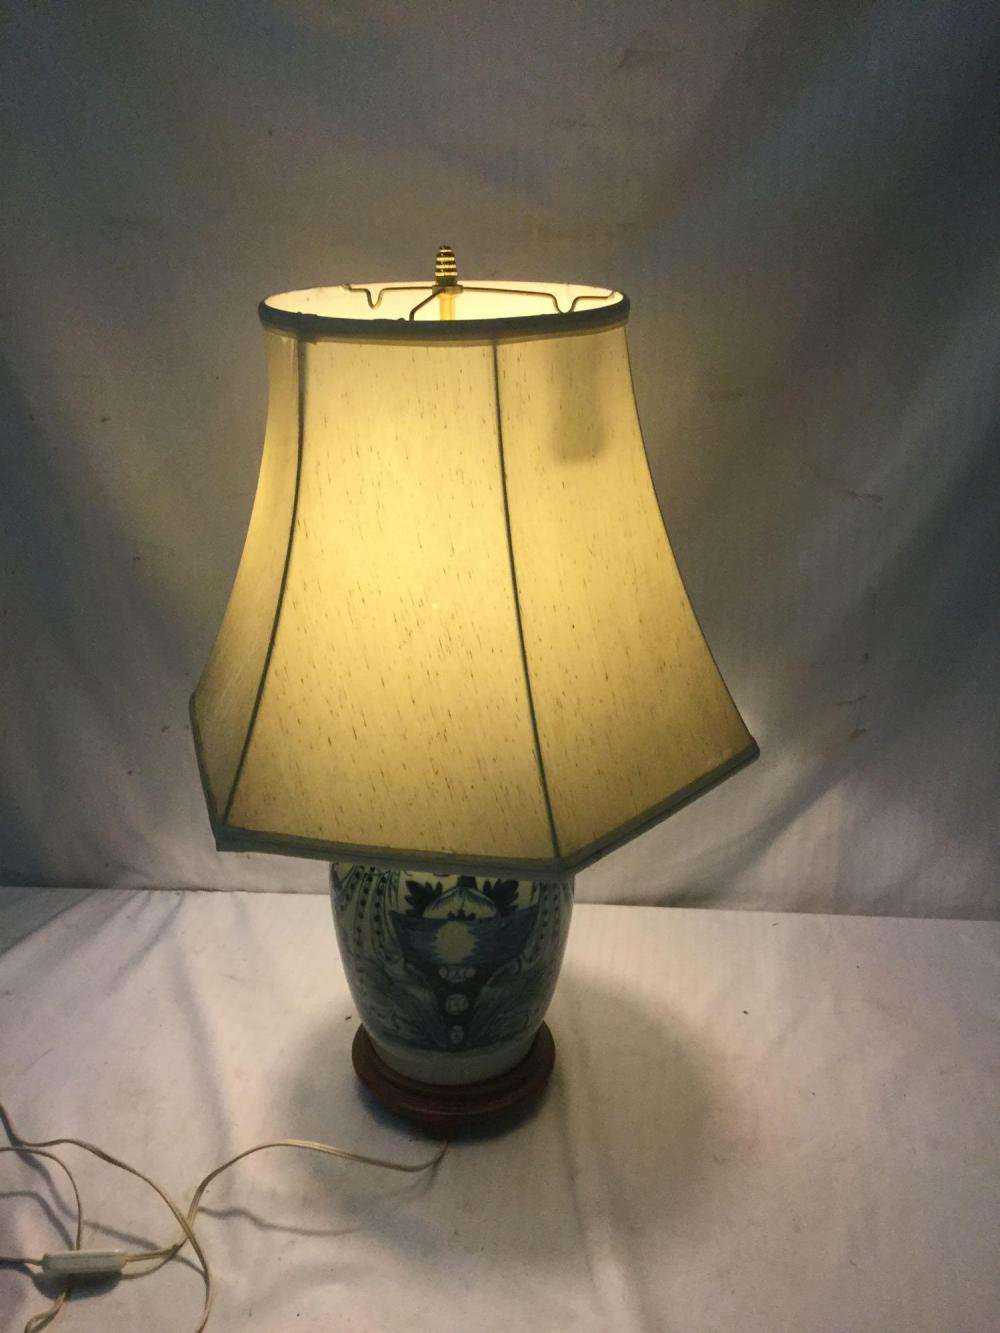 Lot 296: Hand painted vintage blue Chinese motif table lamp - tested and working